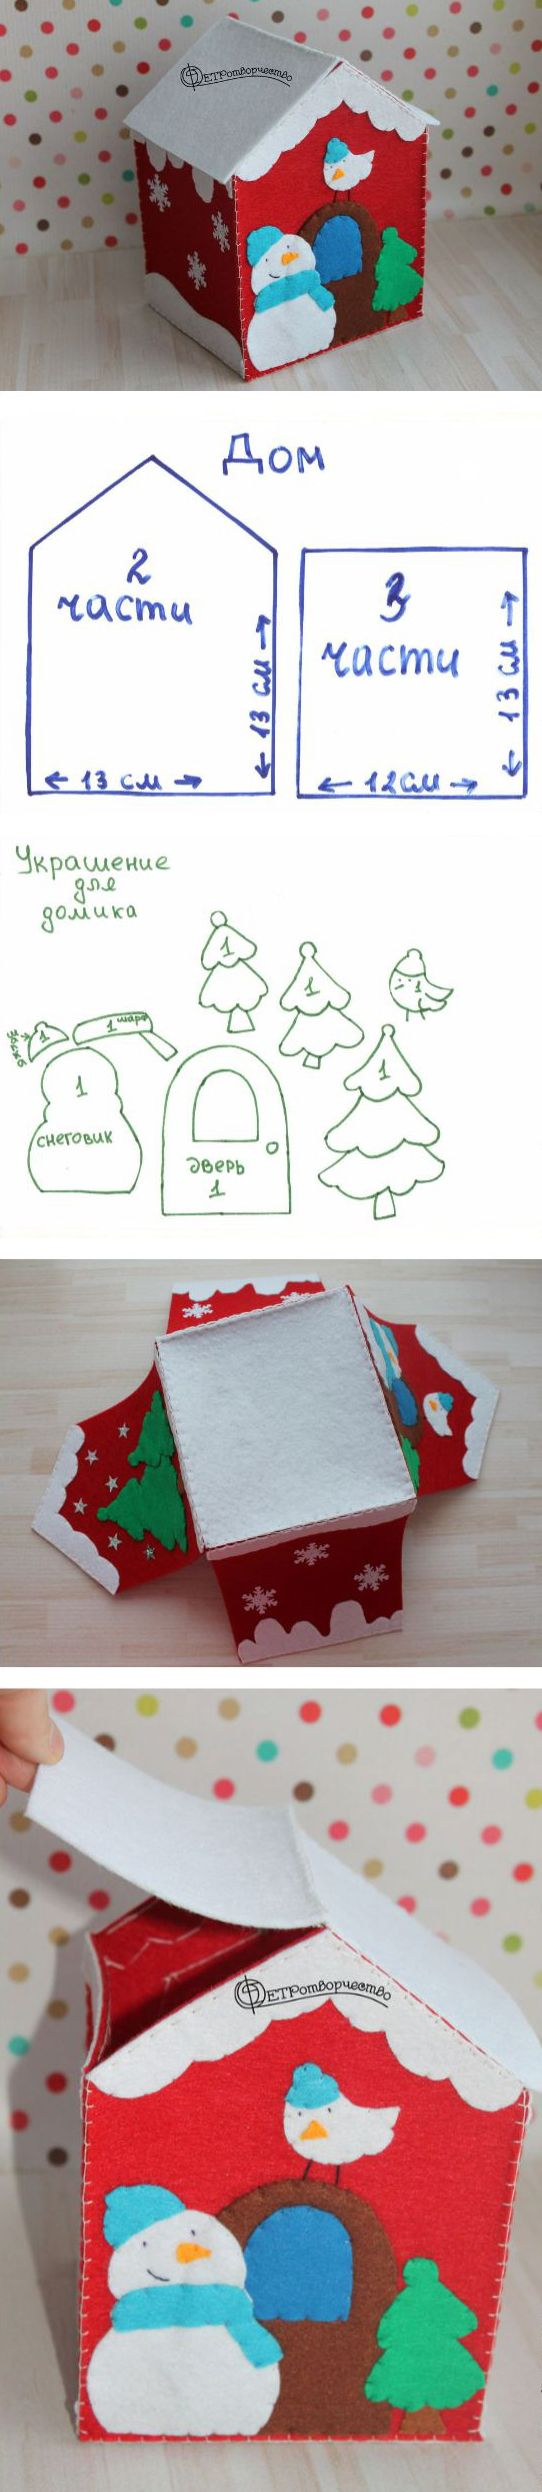 """How to make felted gift bags """"Home"""". Click on image to see step-by-step tutorial"""